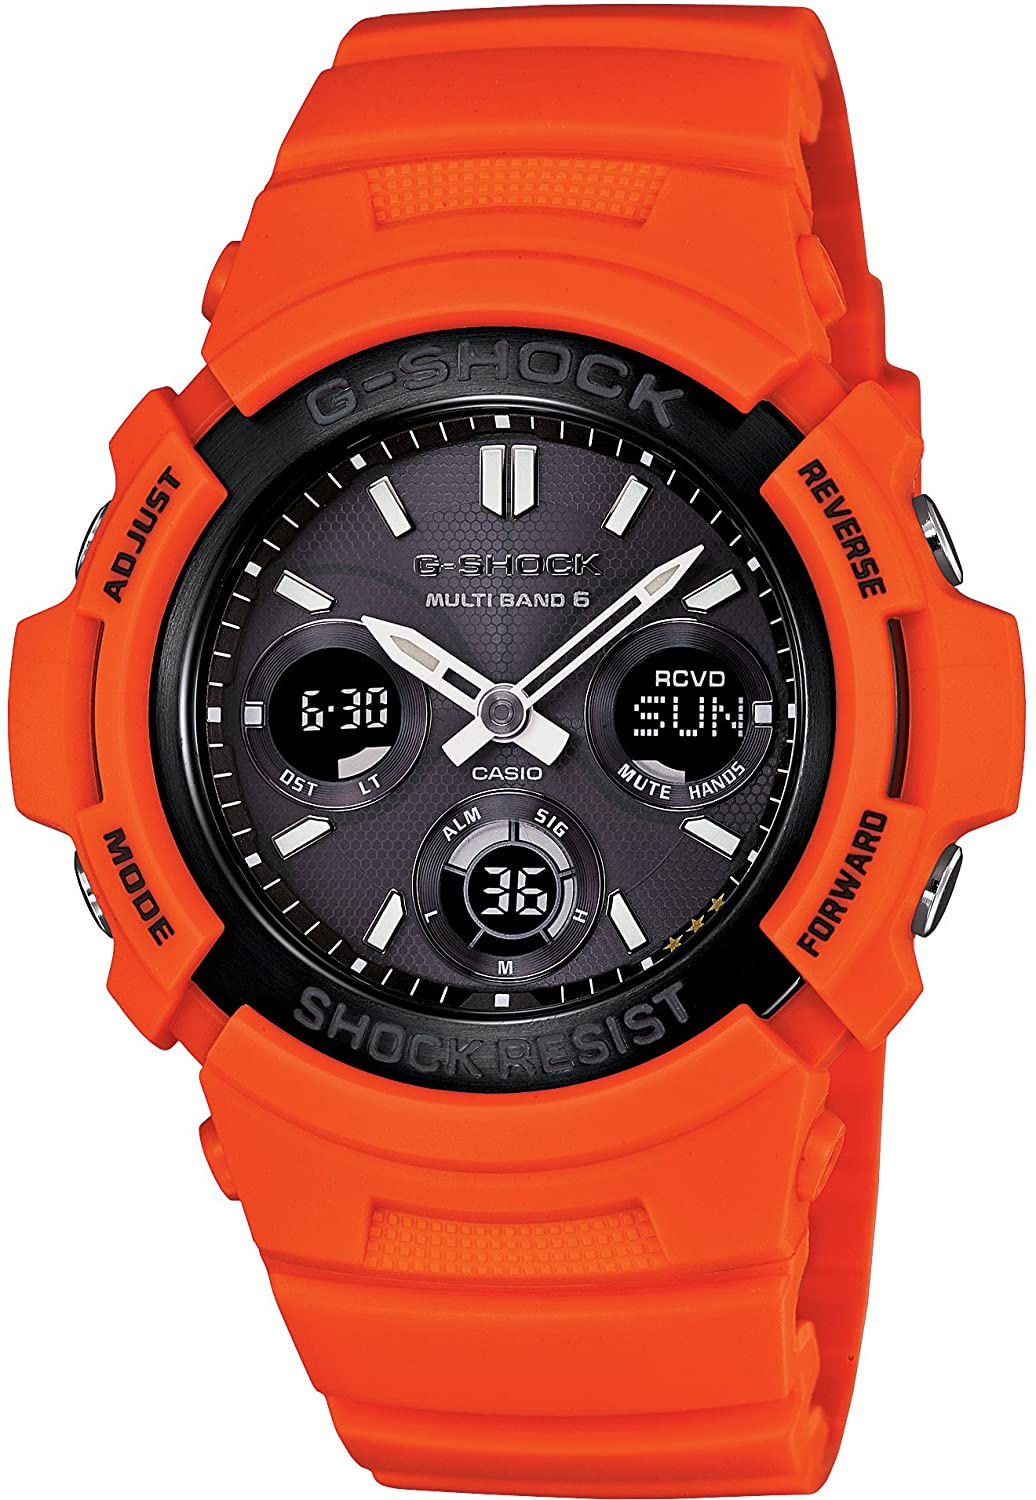 CASIO G-SHOCK Rescue Orange Series AWG-M100MR-4AJF japan import